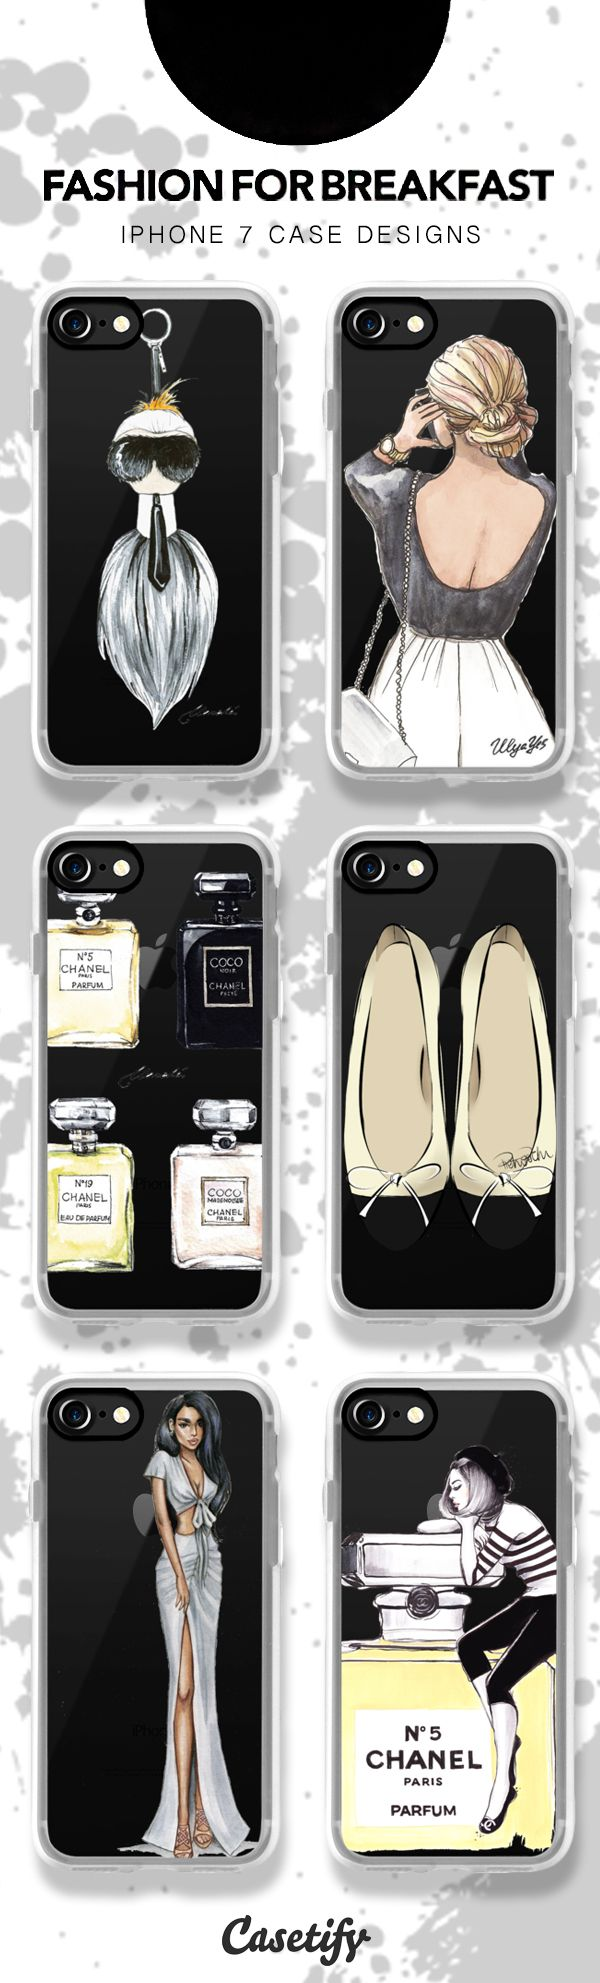 Fashion for breakfast - shop these illustrated iPhone 7 case designs here > https://www.casetify.com/artworks/HxsAFRbPap